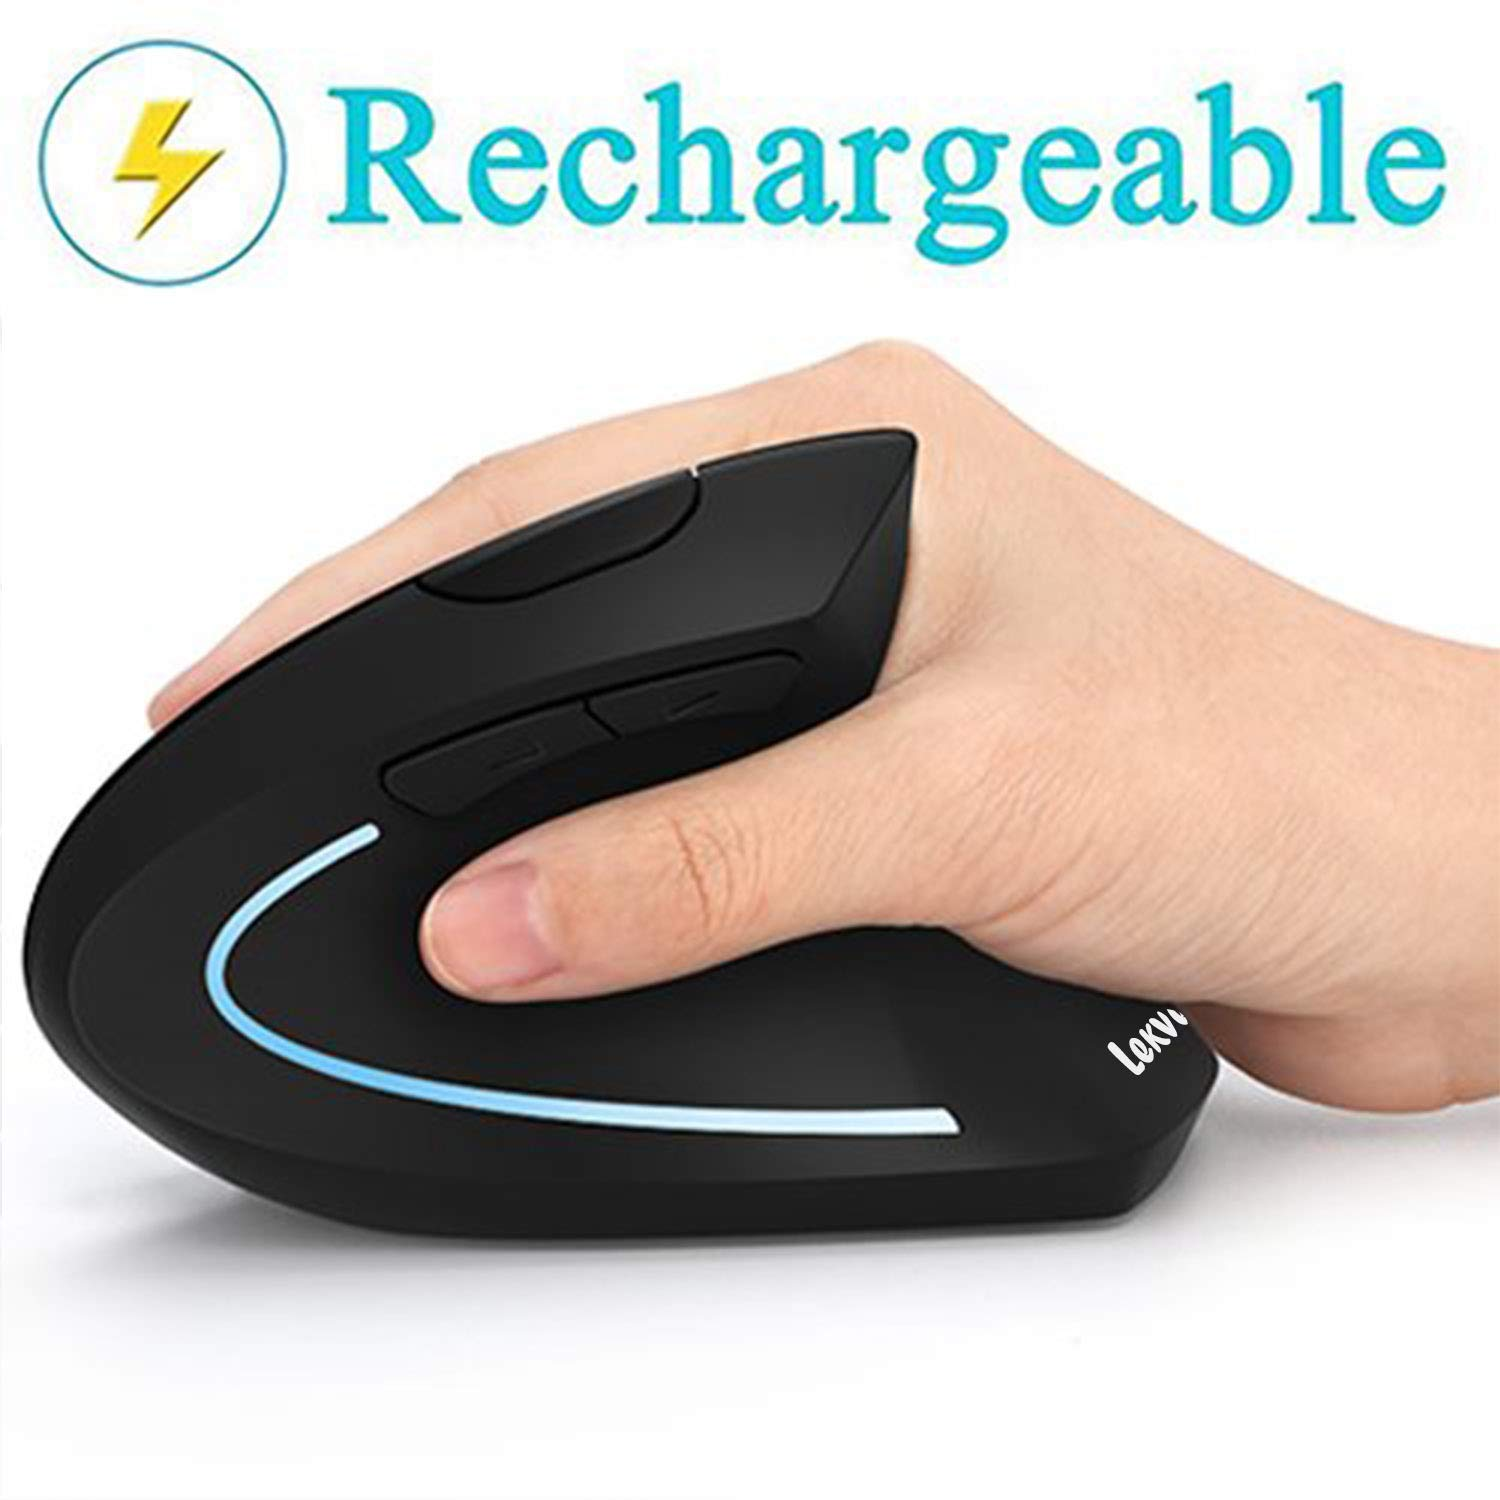 Ergonomic Mouse Vertical Wireless Rechargeable